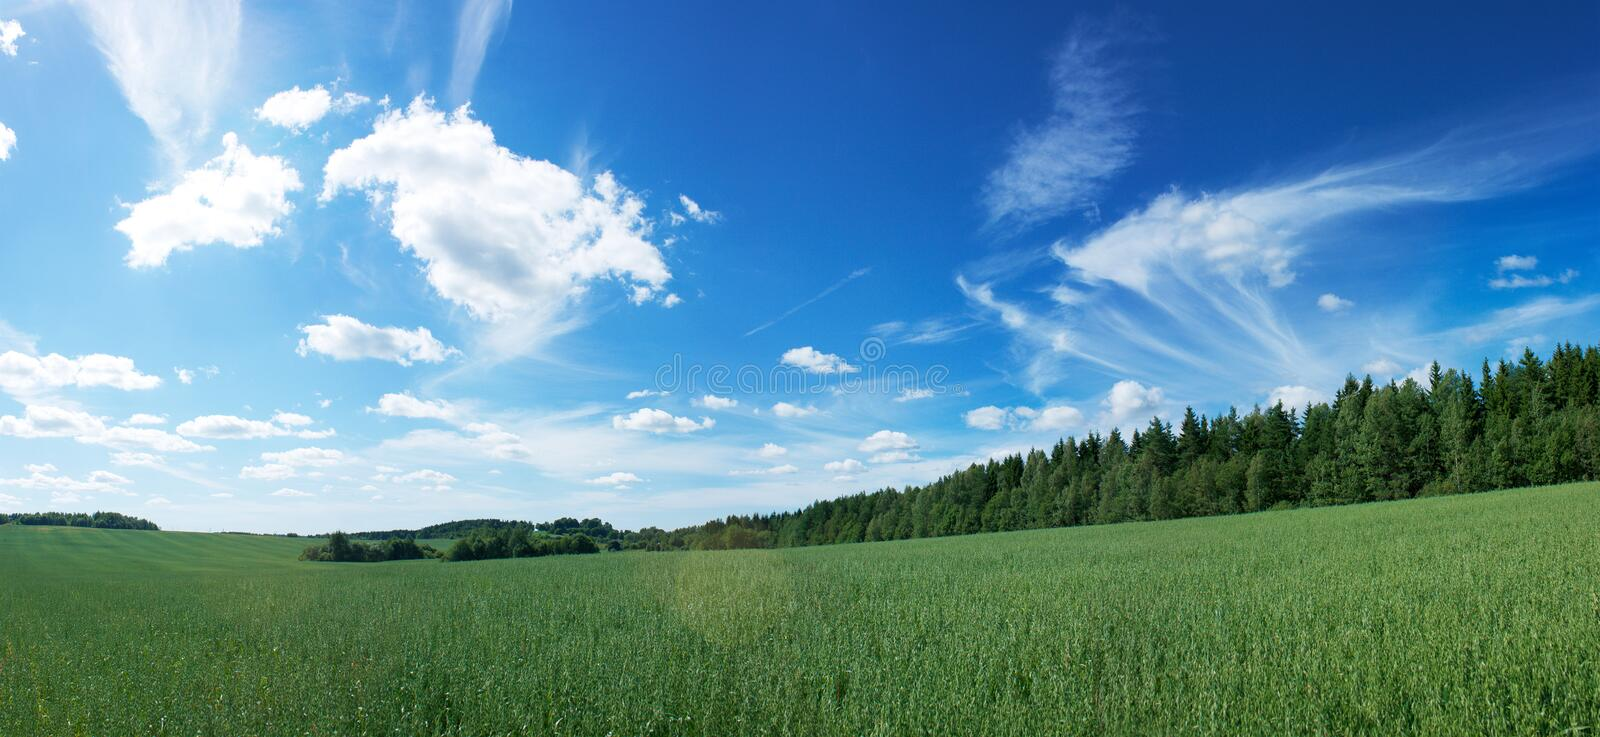 Panoramic Landscape with Green Field and Blue Sky. Panoramic Landscape with Green Field on the Background of Beautiful Clouds and Blue Sky royalty free stock image